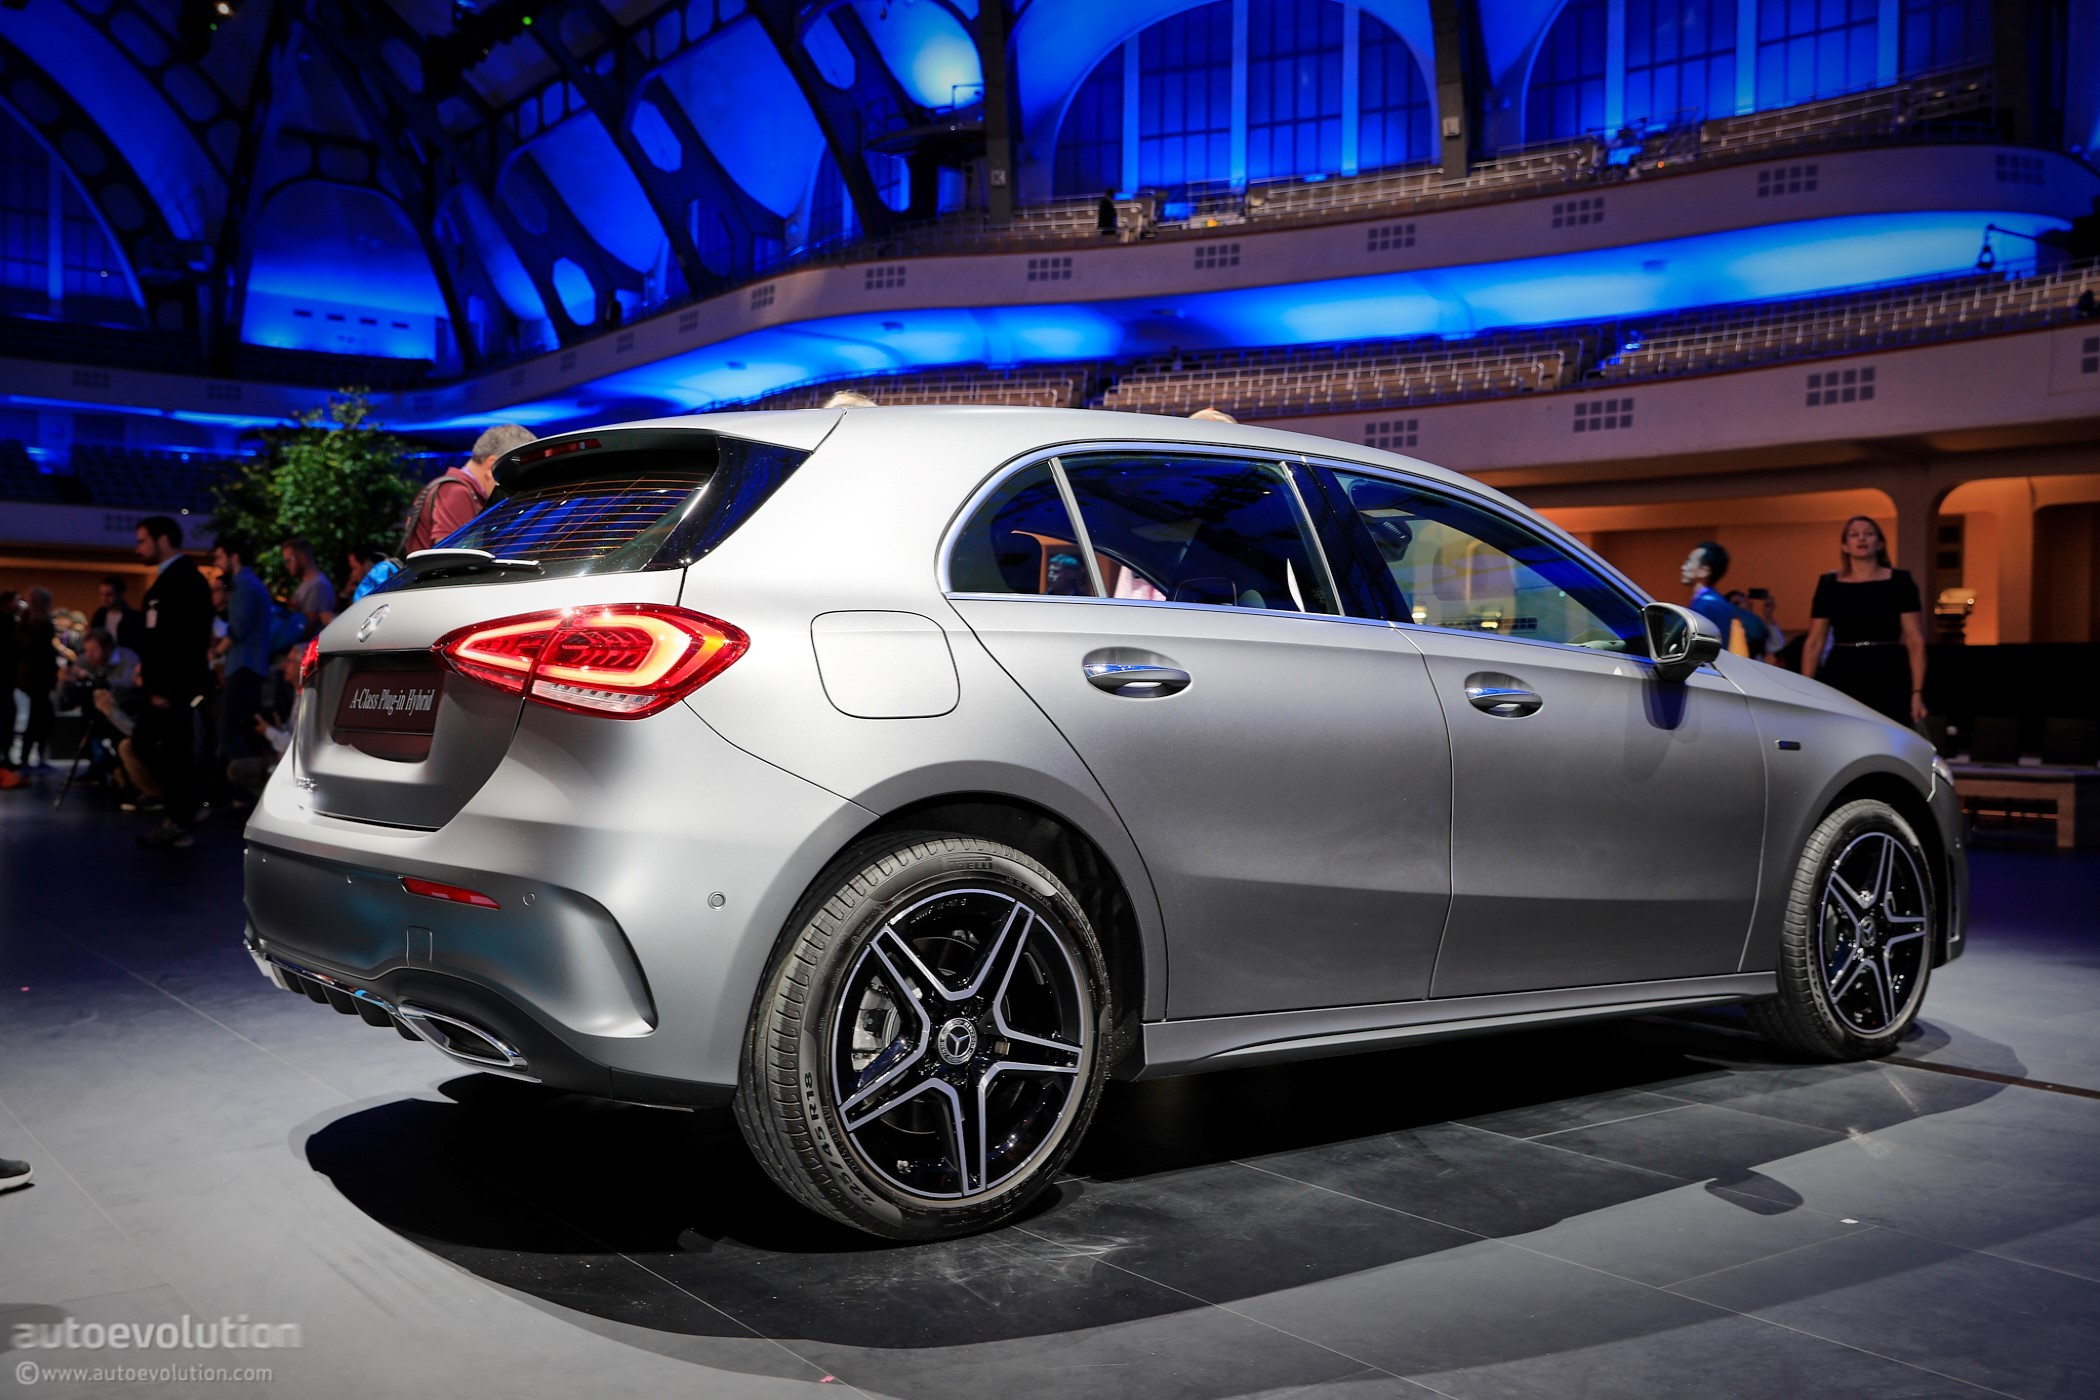 2020 mercedes-benz a 250 e plug-in hybrid hatchback packs 15 6-kwh battery